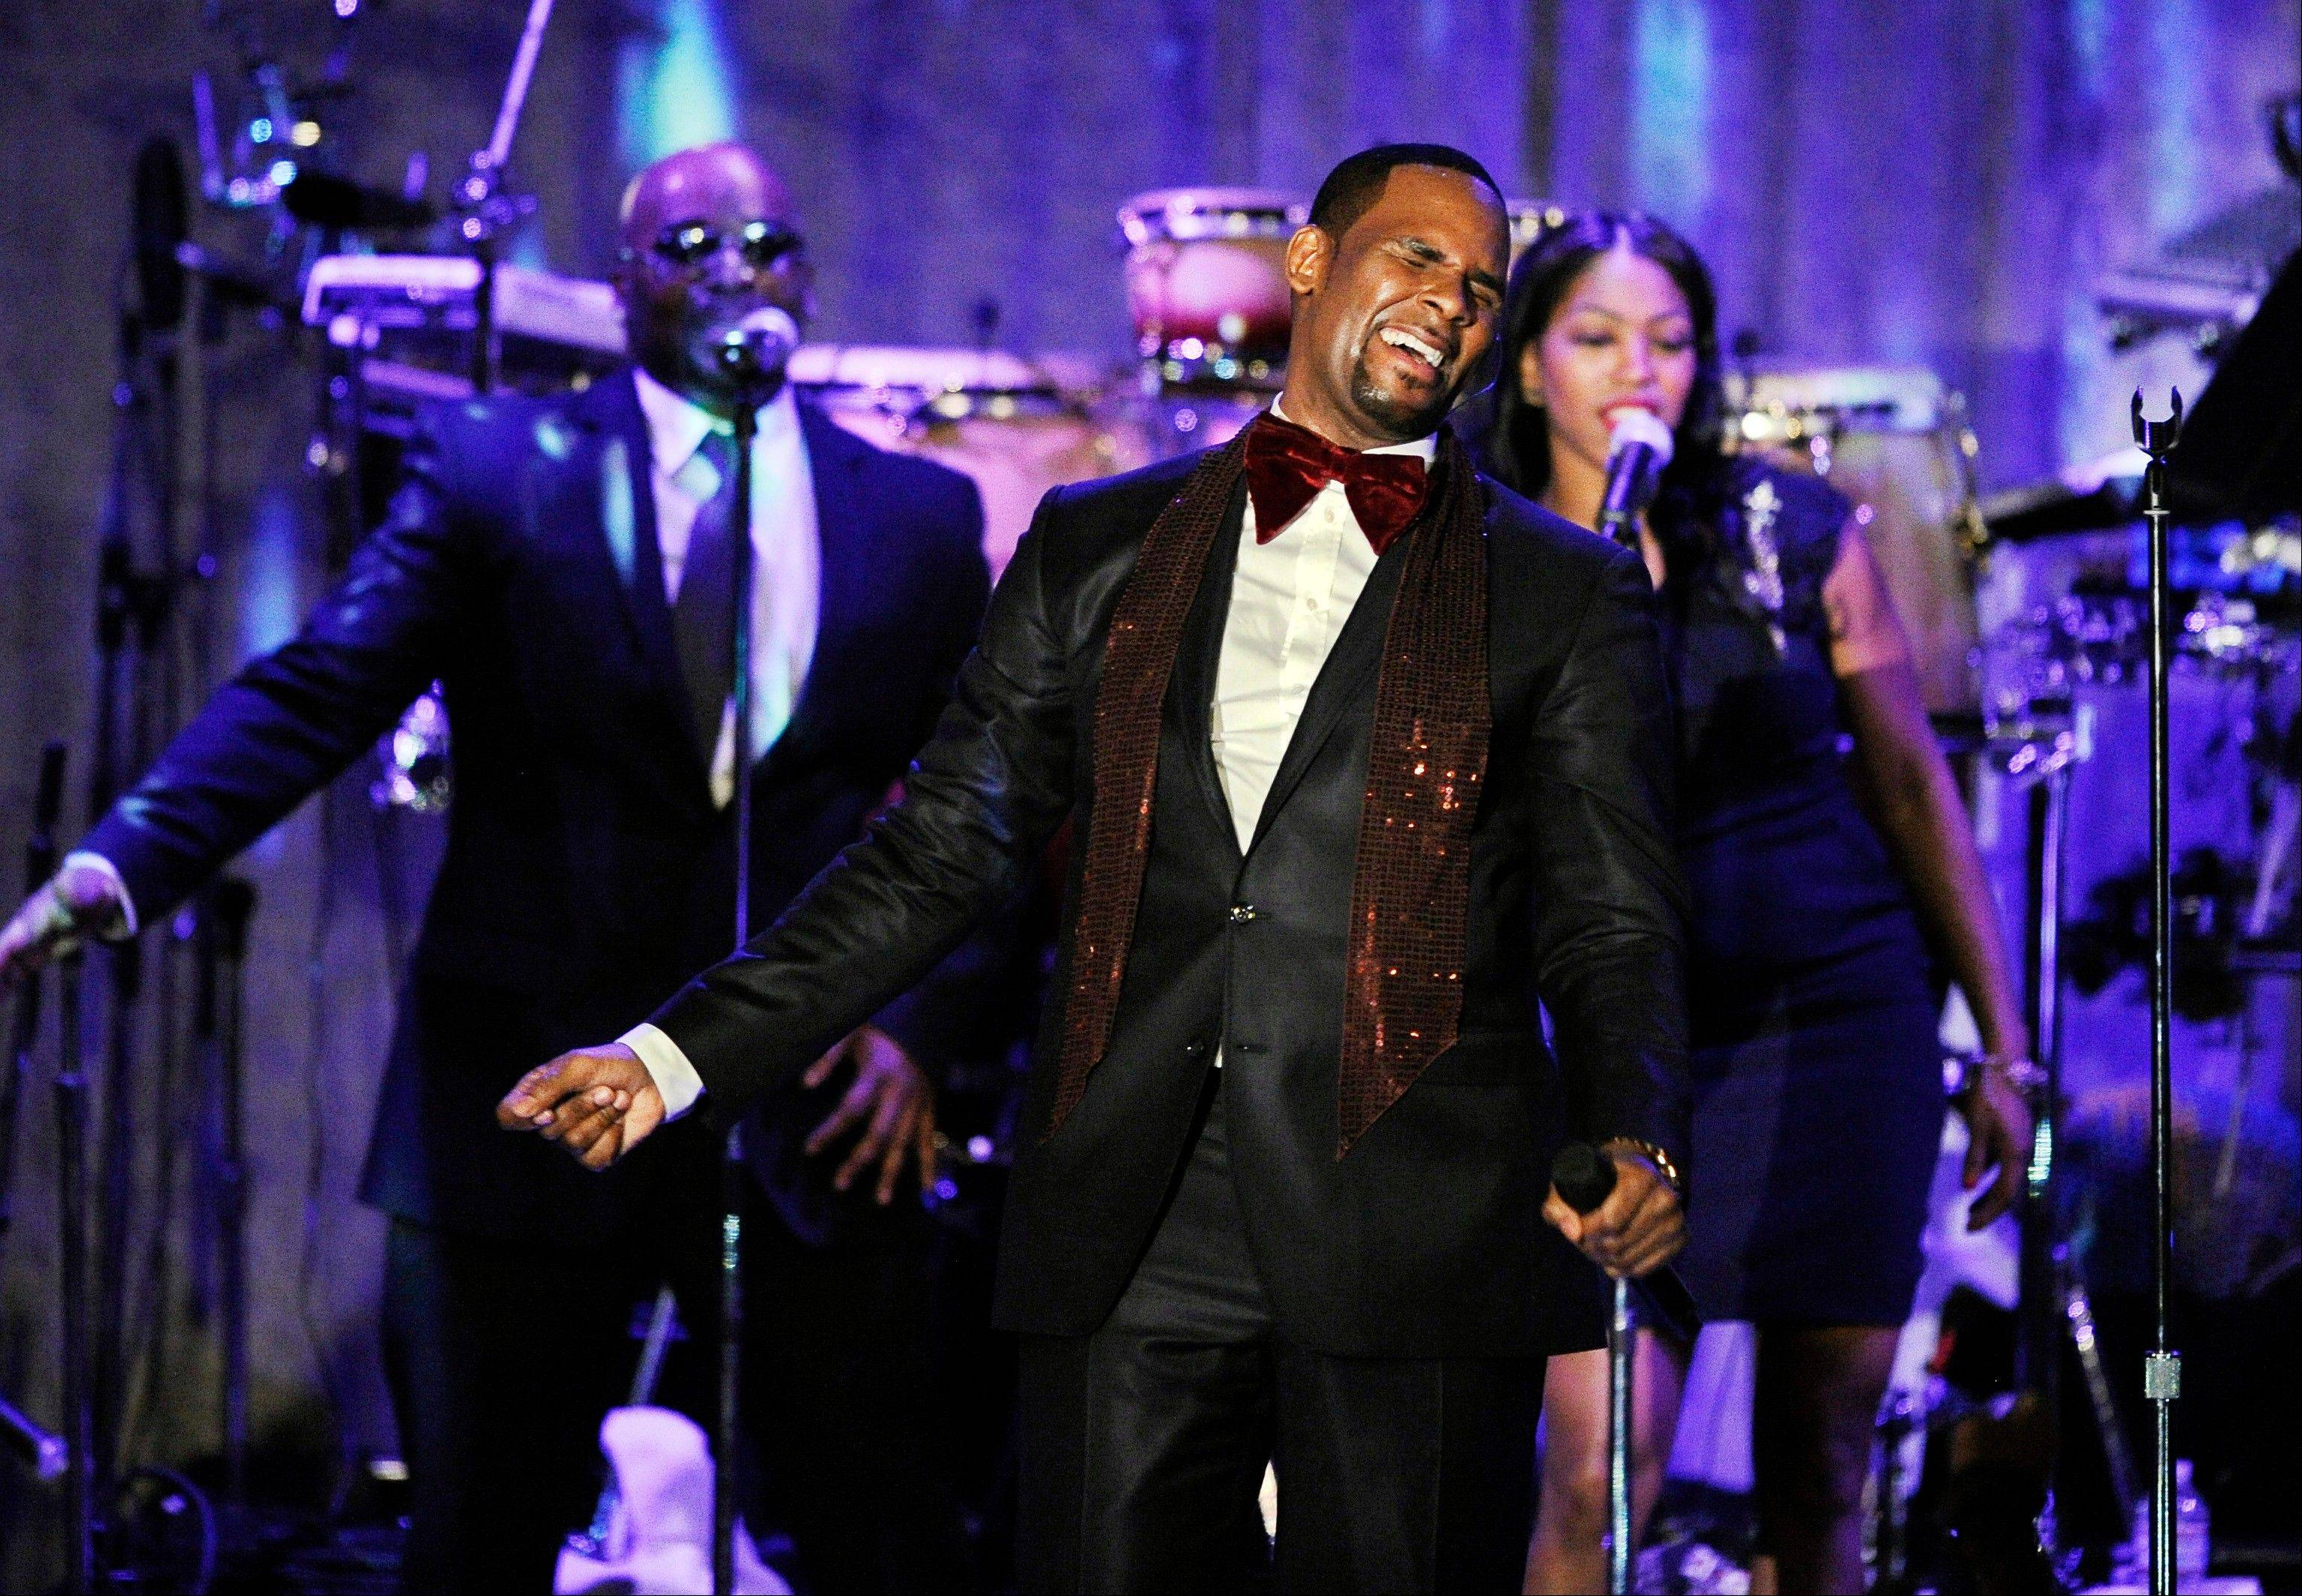 R. Kelly is up for the Ashford & Simpson songwriter's award and album of the year at this year's Soul Train Awards, bringing his career total to 21.